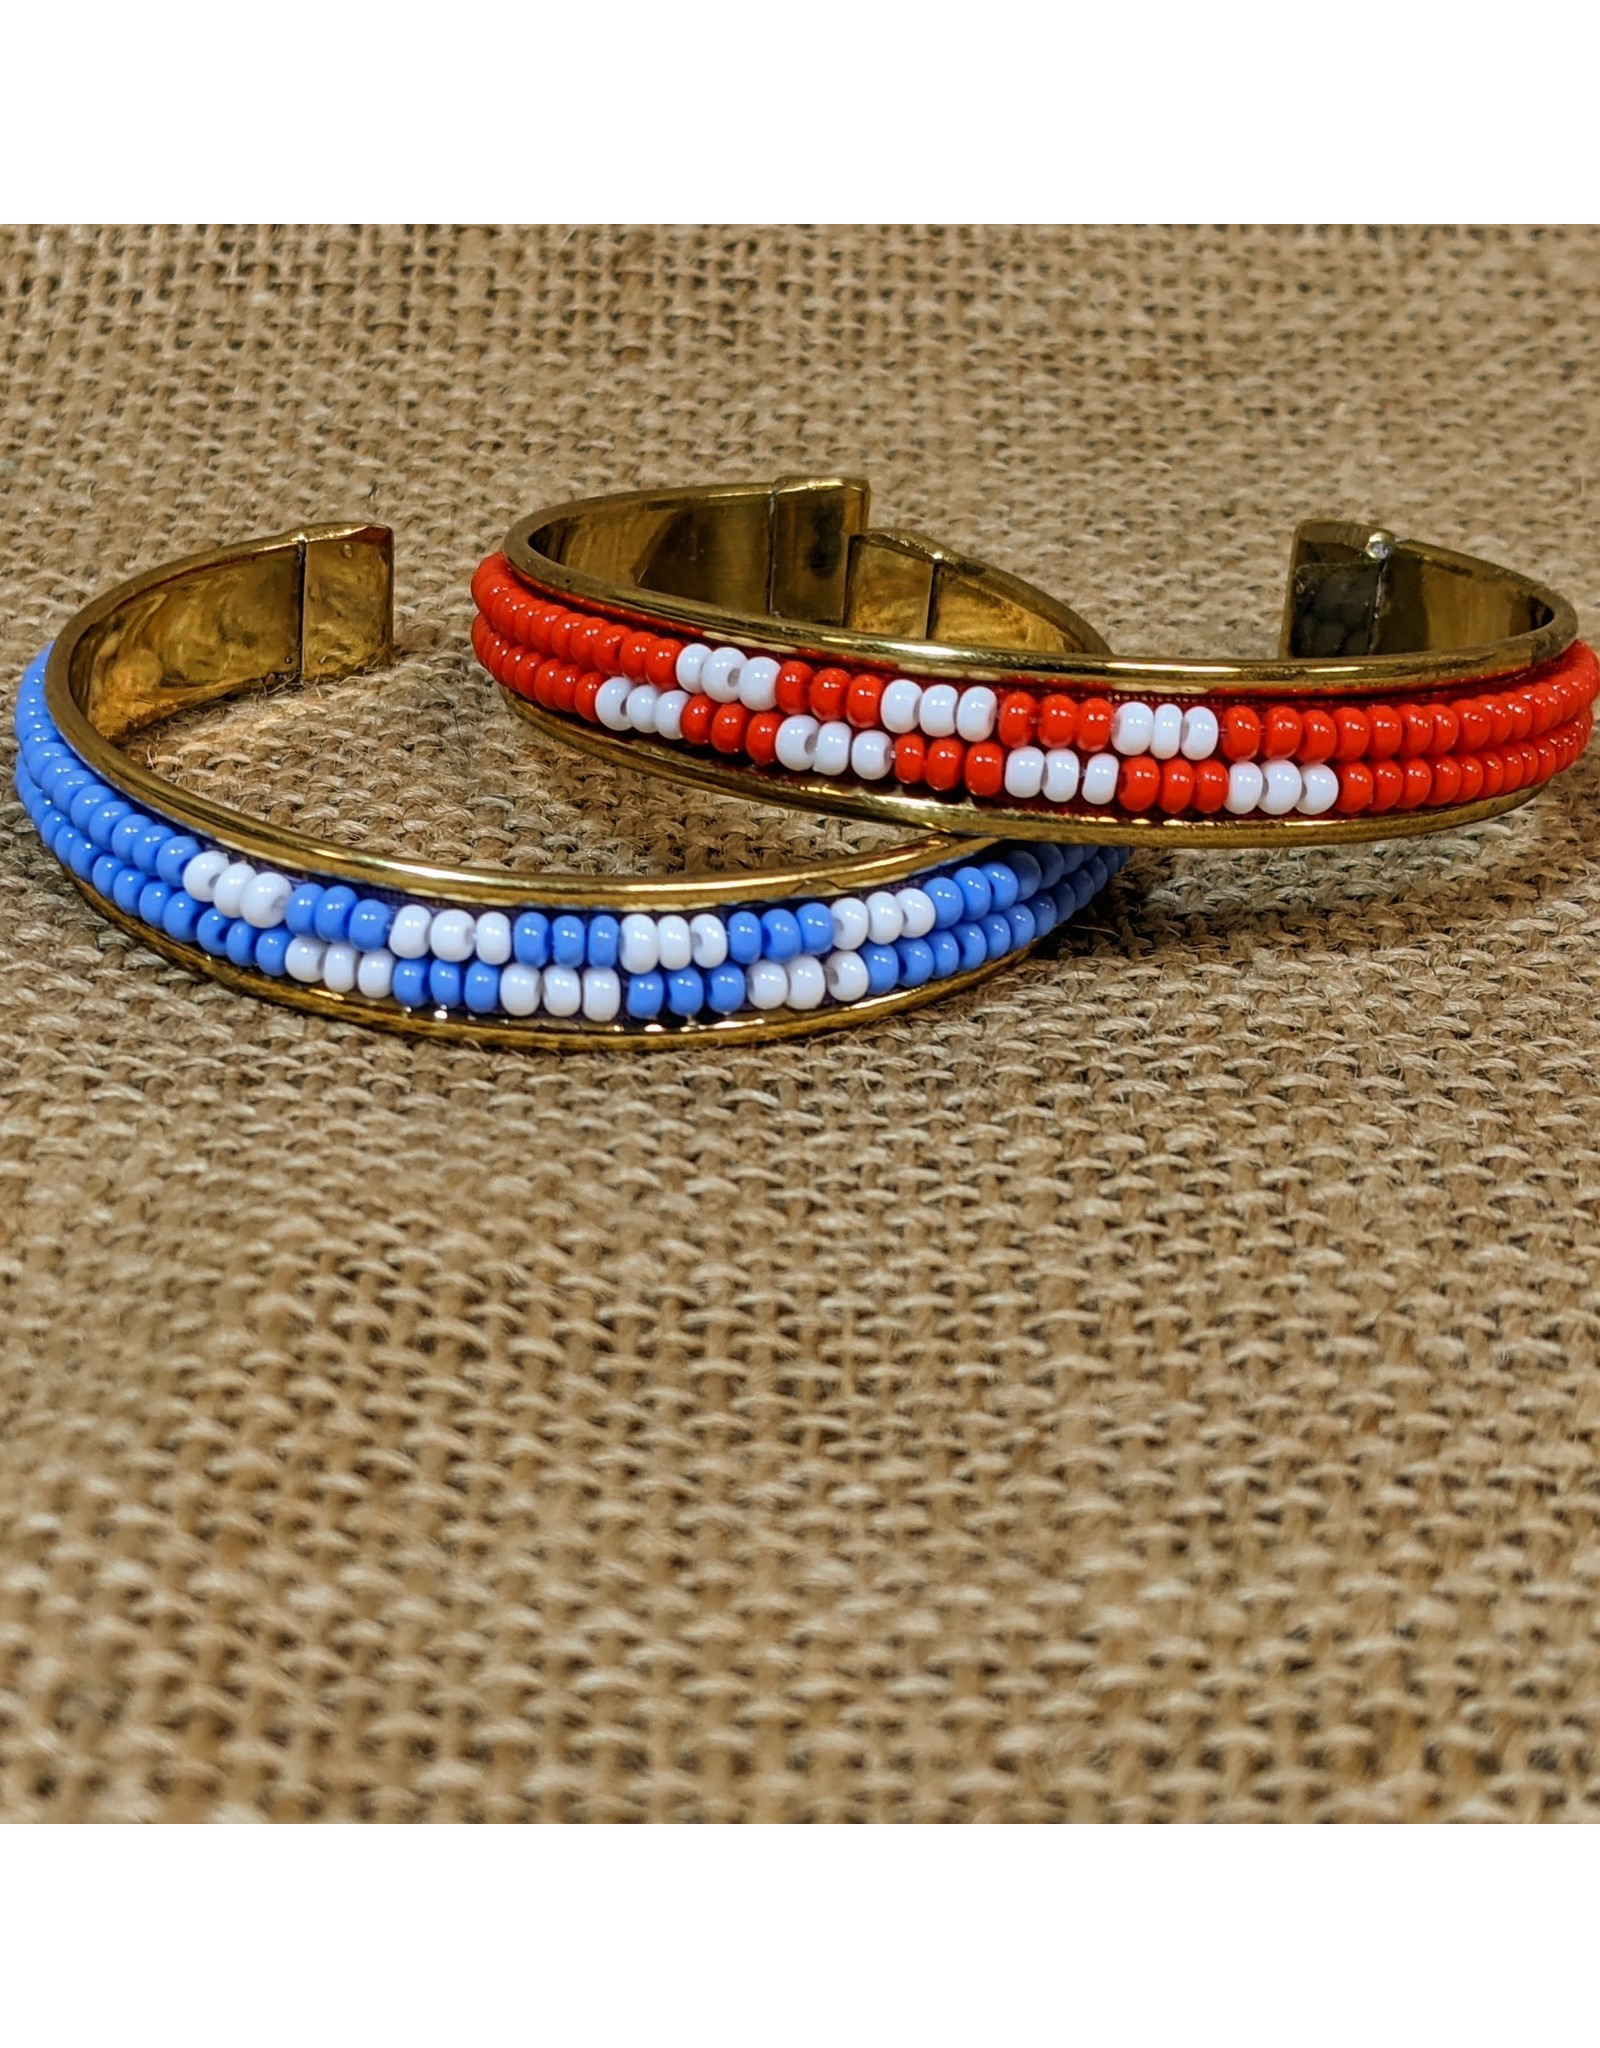 Ten Thousand Villages CLEARANCE Beaded Cuff, India